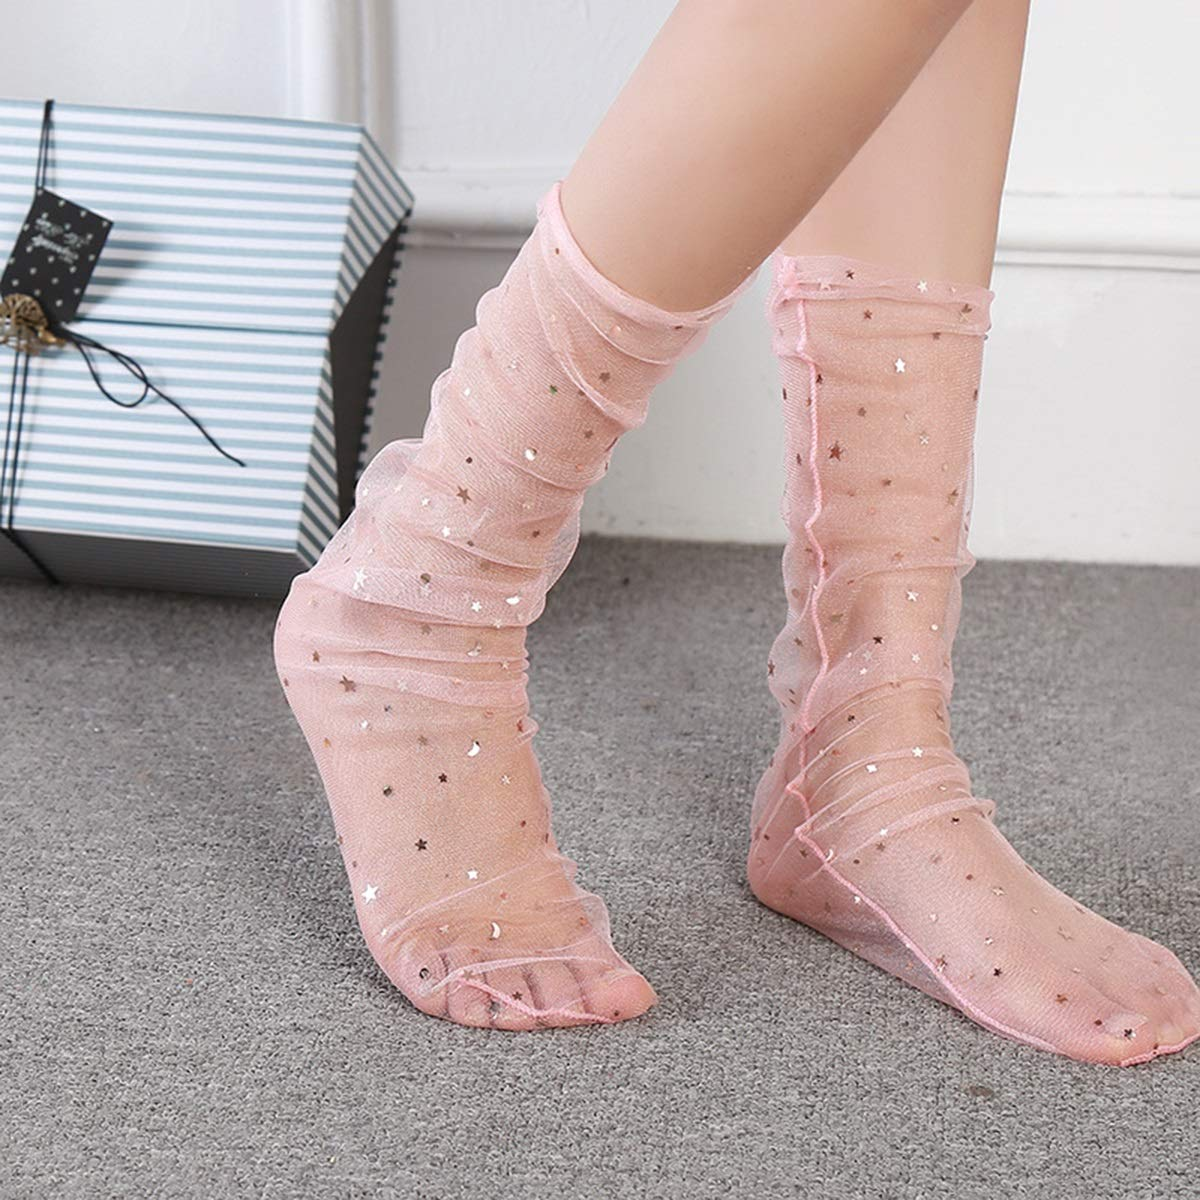 1 paio Moda Donna Ragazze trasparenti Sheer Knee Hight Socks Glitter Star Mesh Tulle Thin Visible Socks